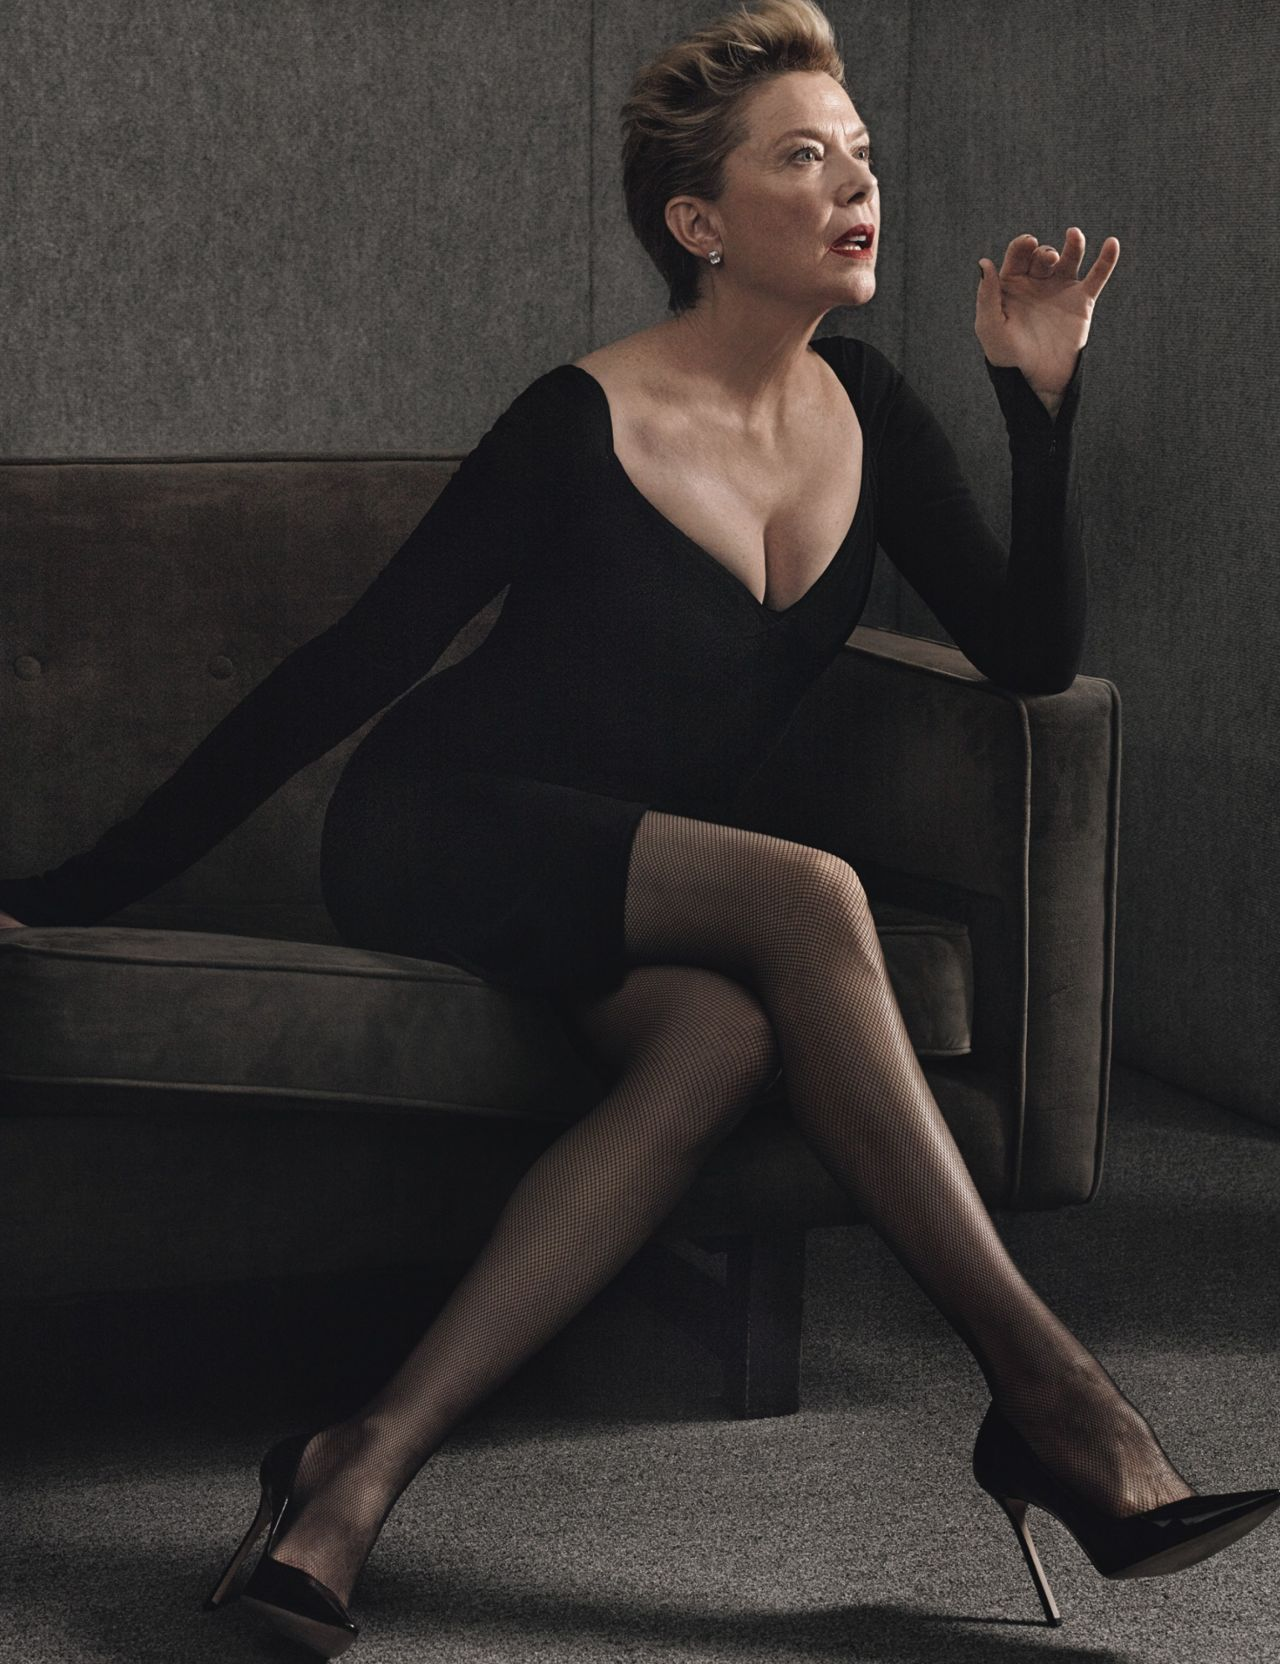 Annette Bening - W 'Best Performances' February 2017 Issue